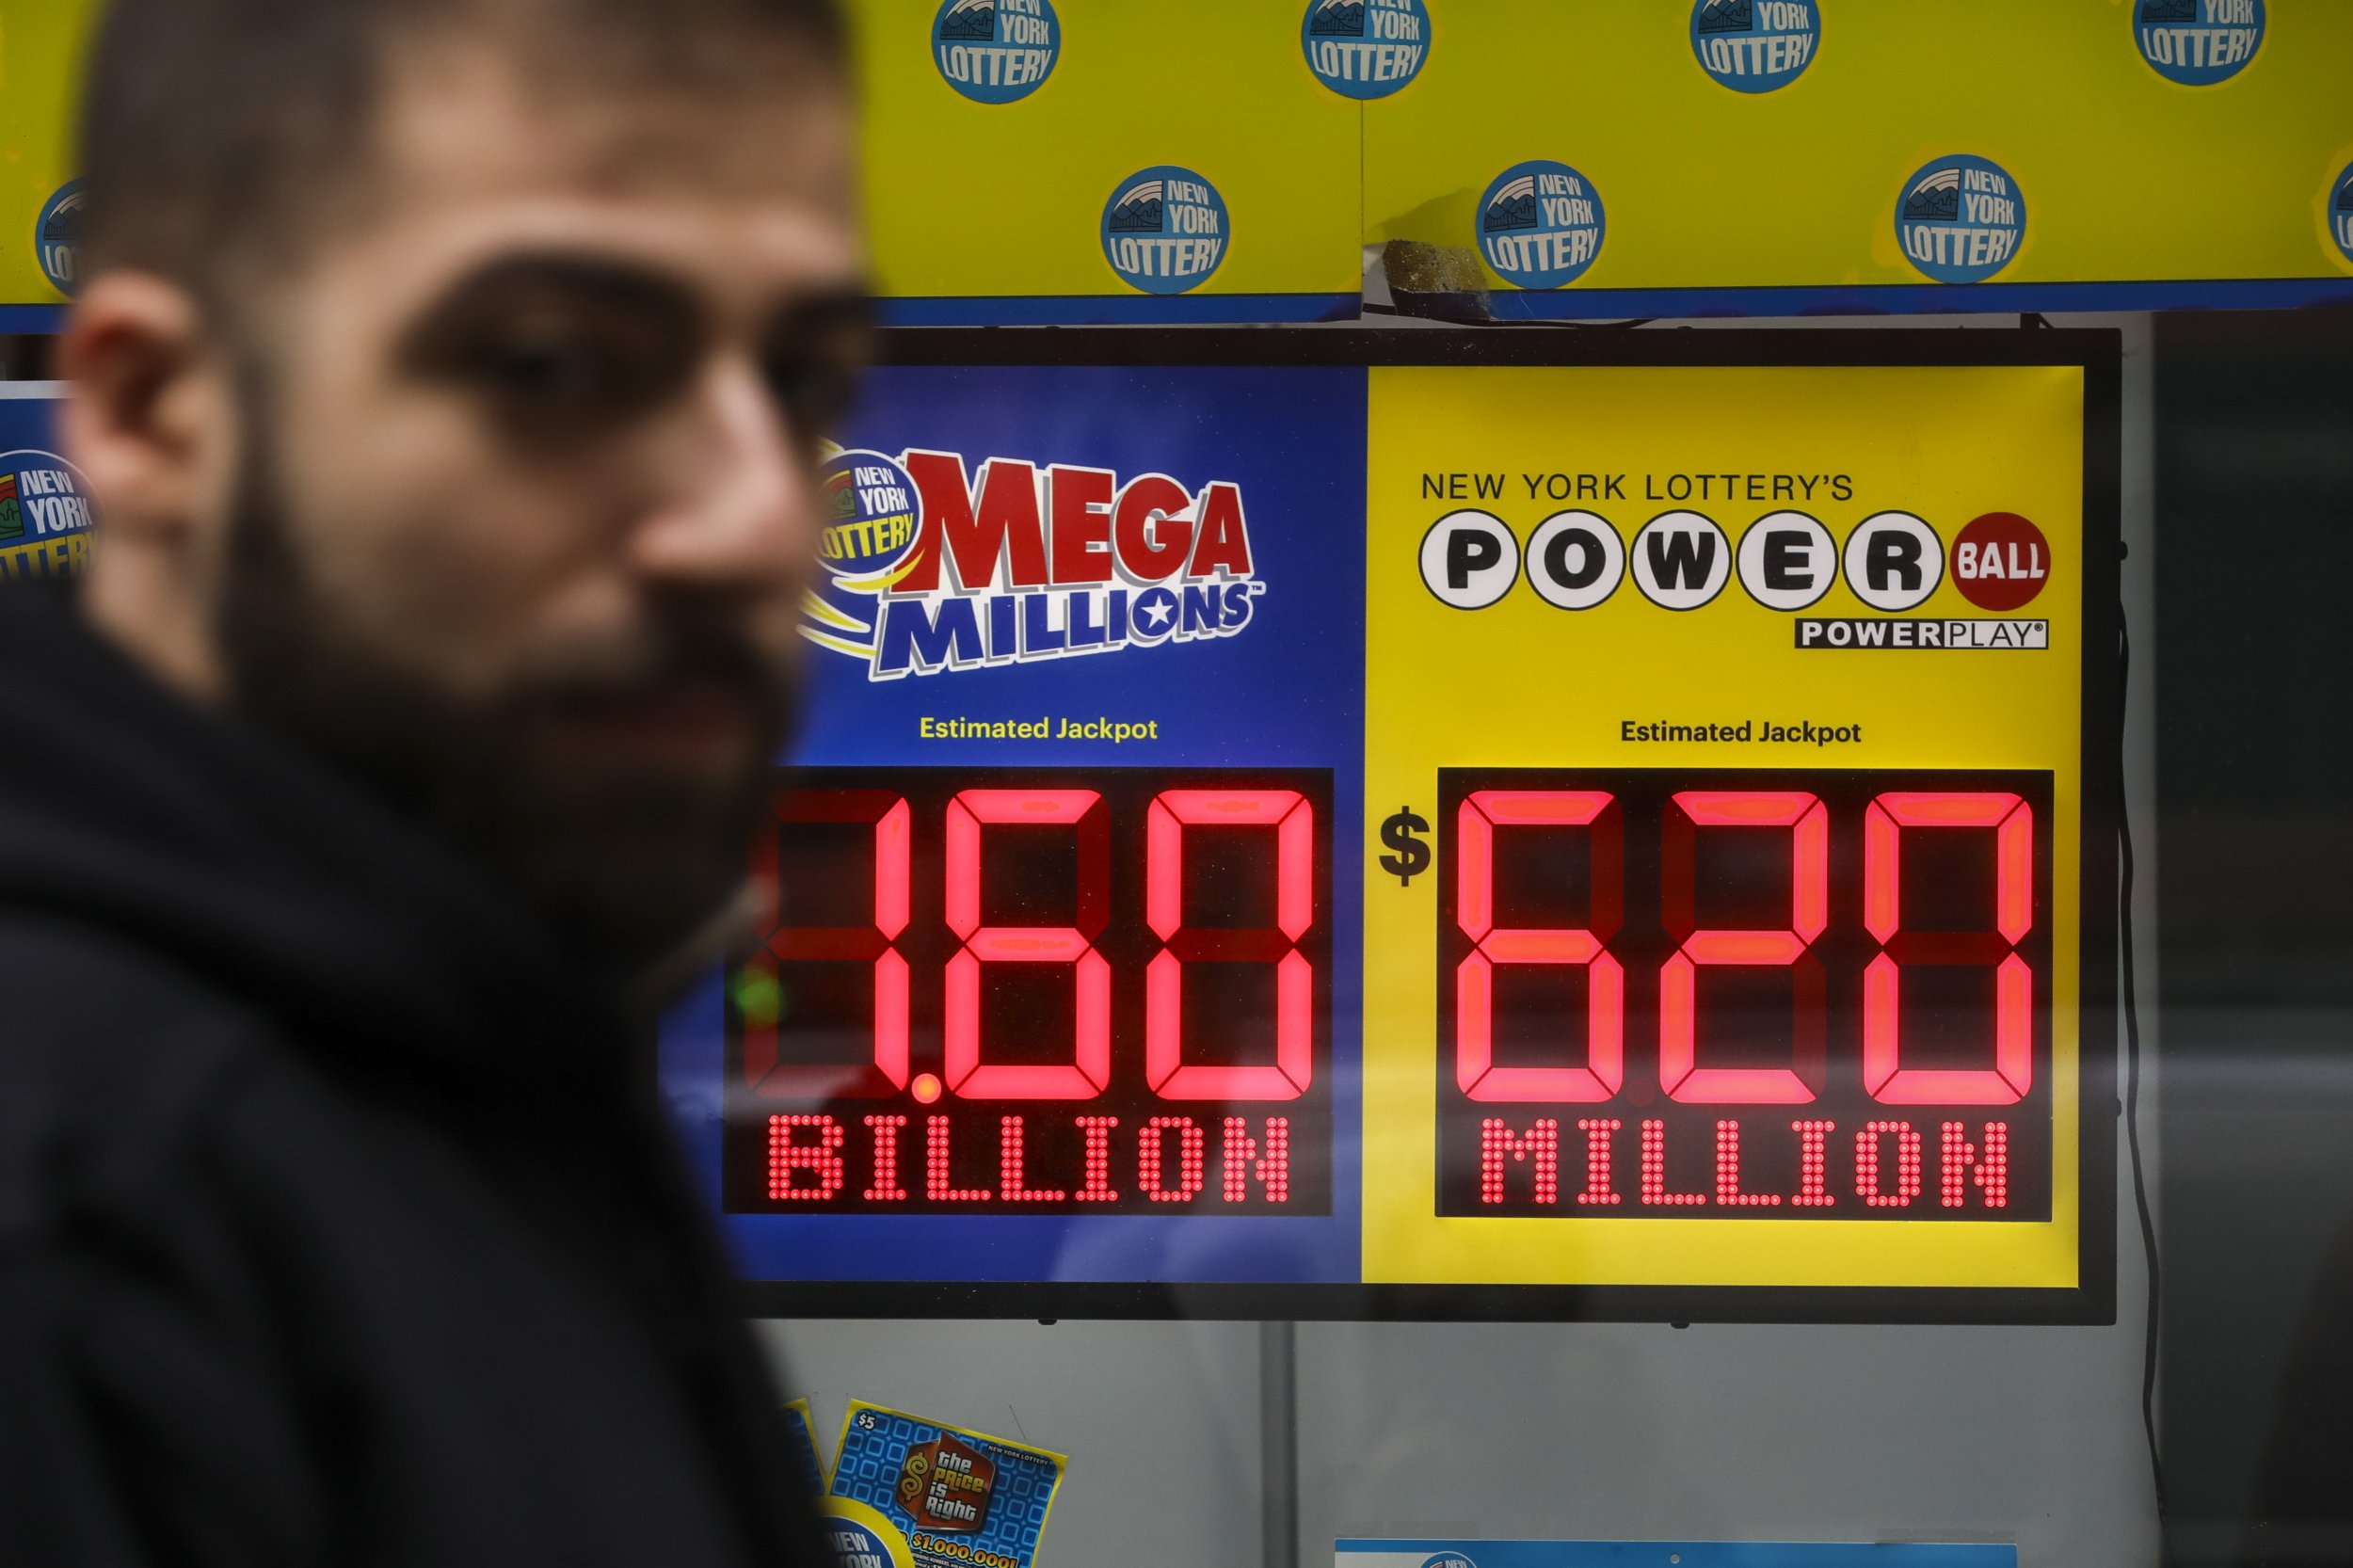 powerball drawing, can you buy tickets online